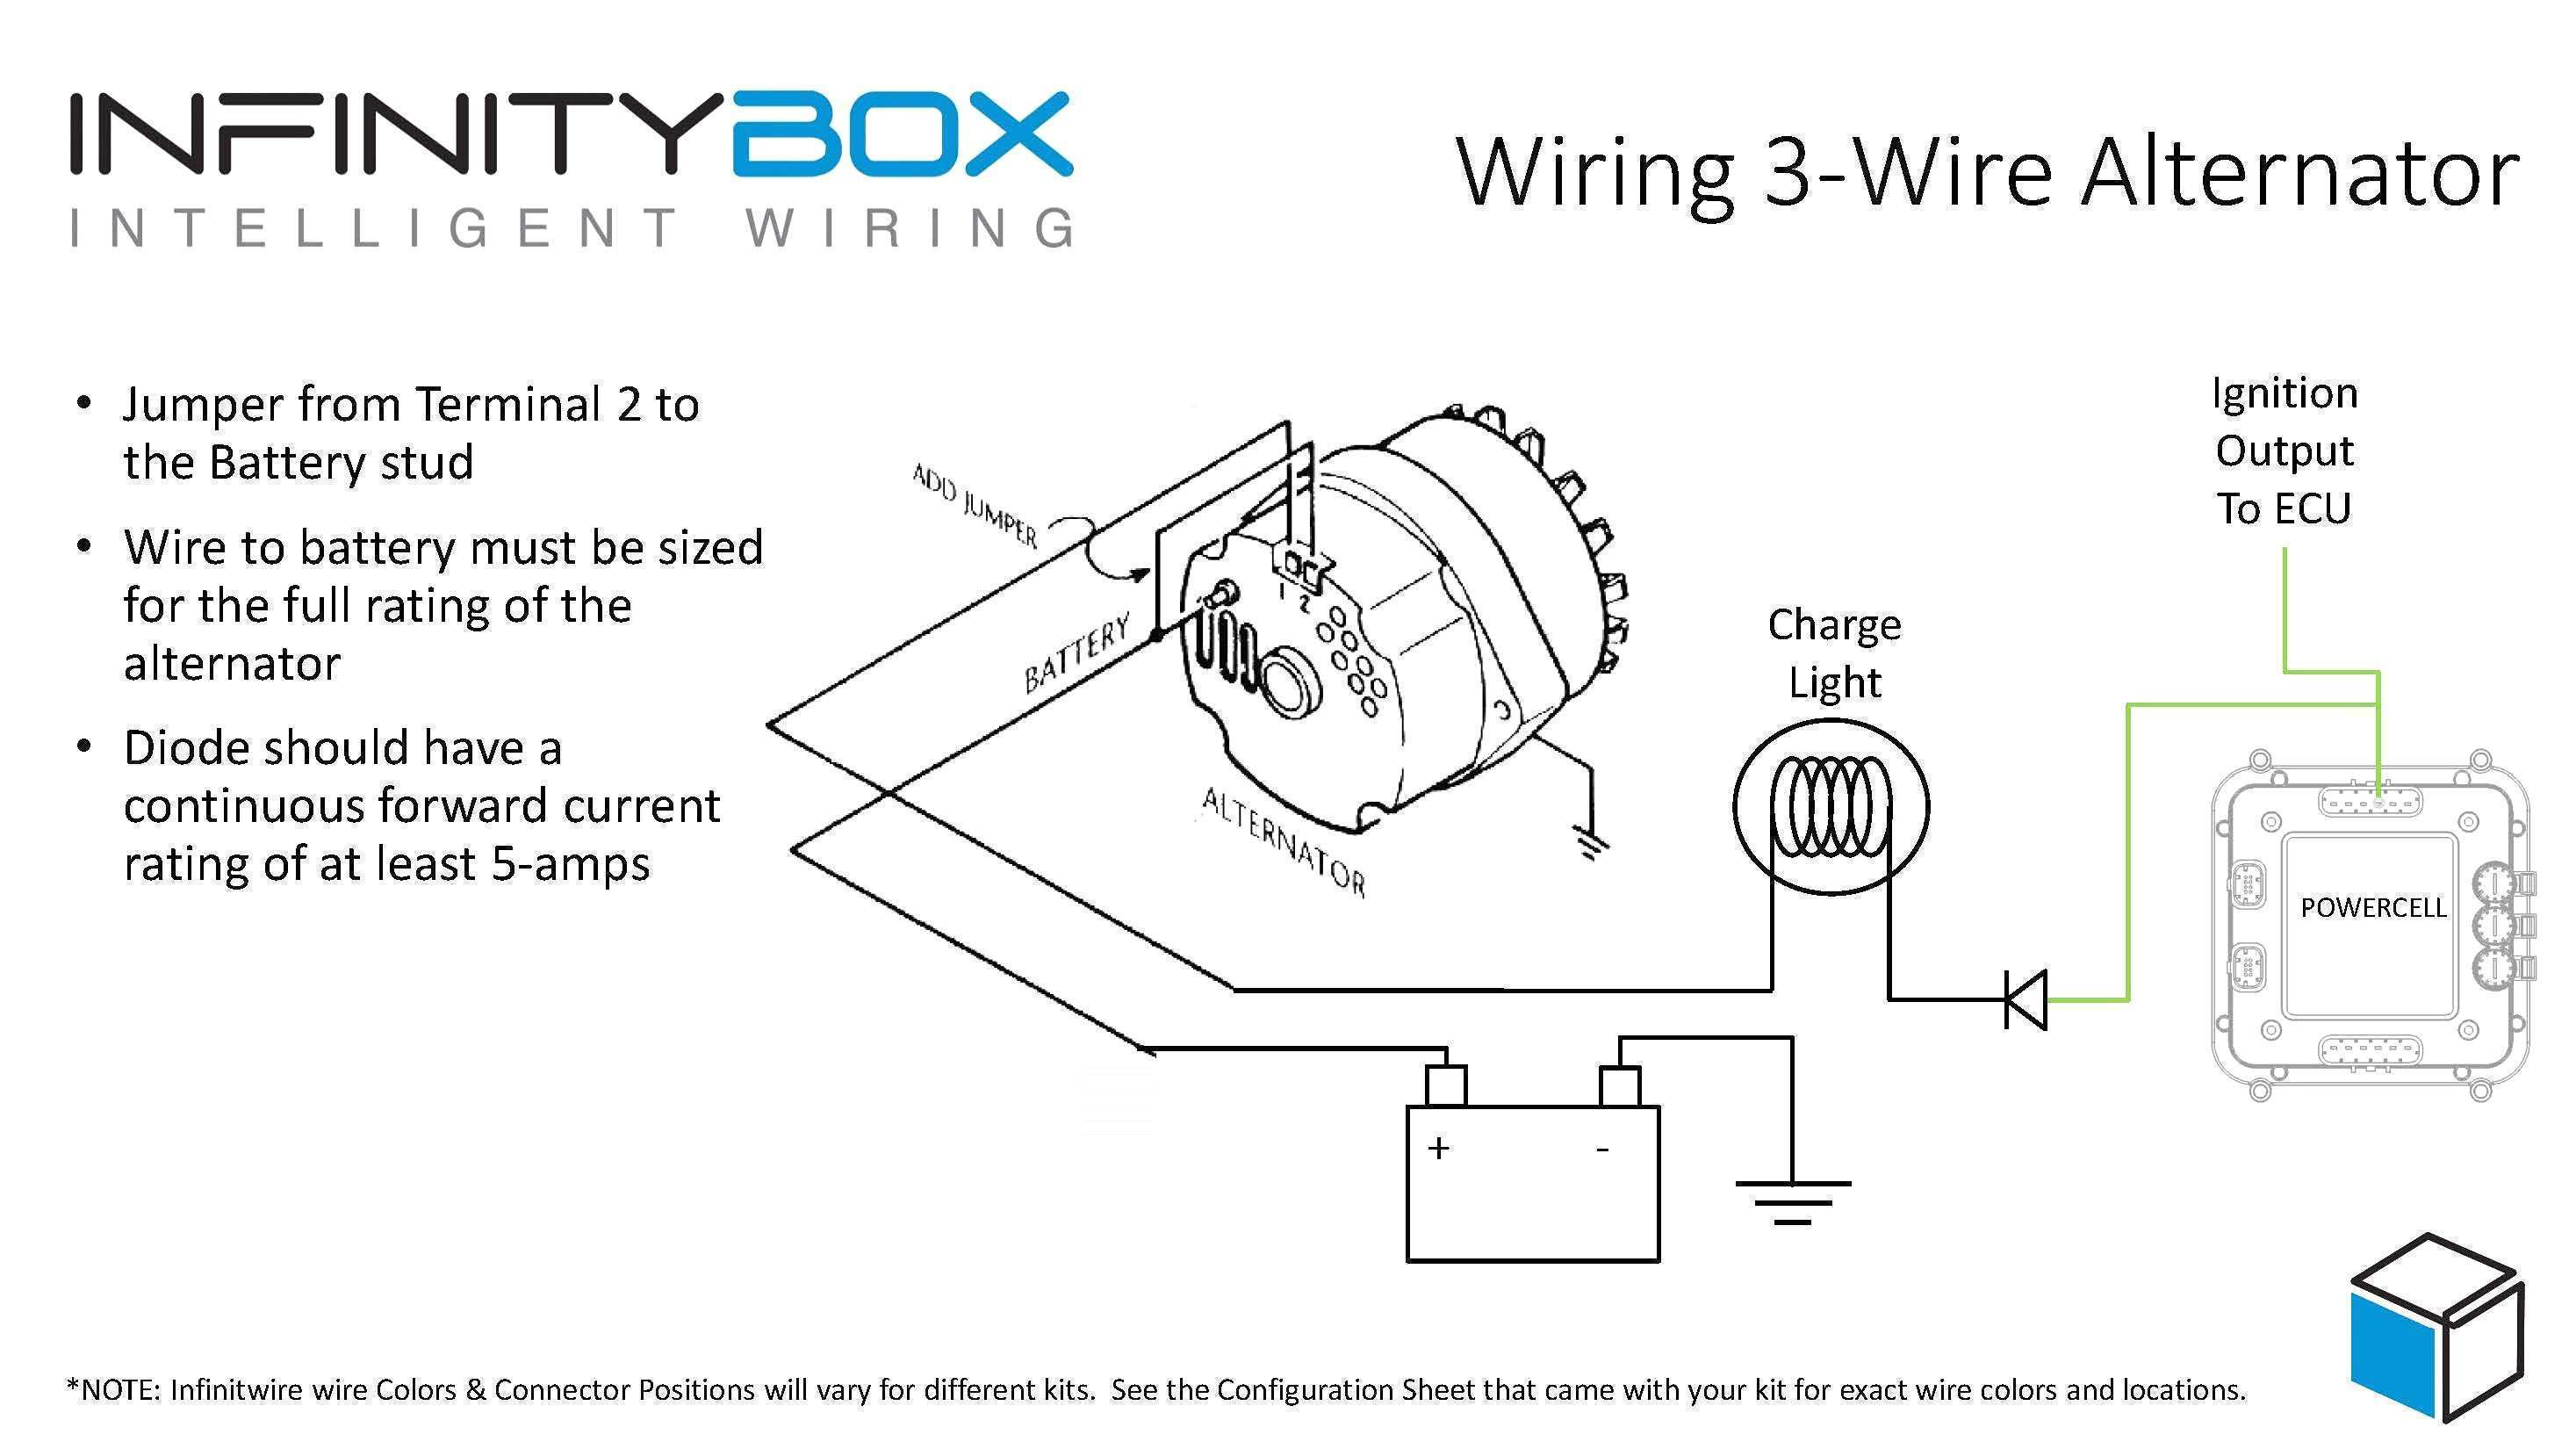 4 Wire Alternator Wiring Diagram | Wiring Diagram